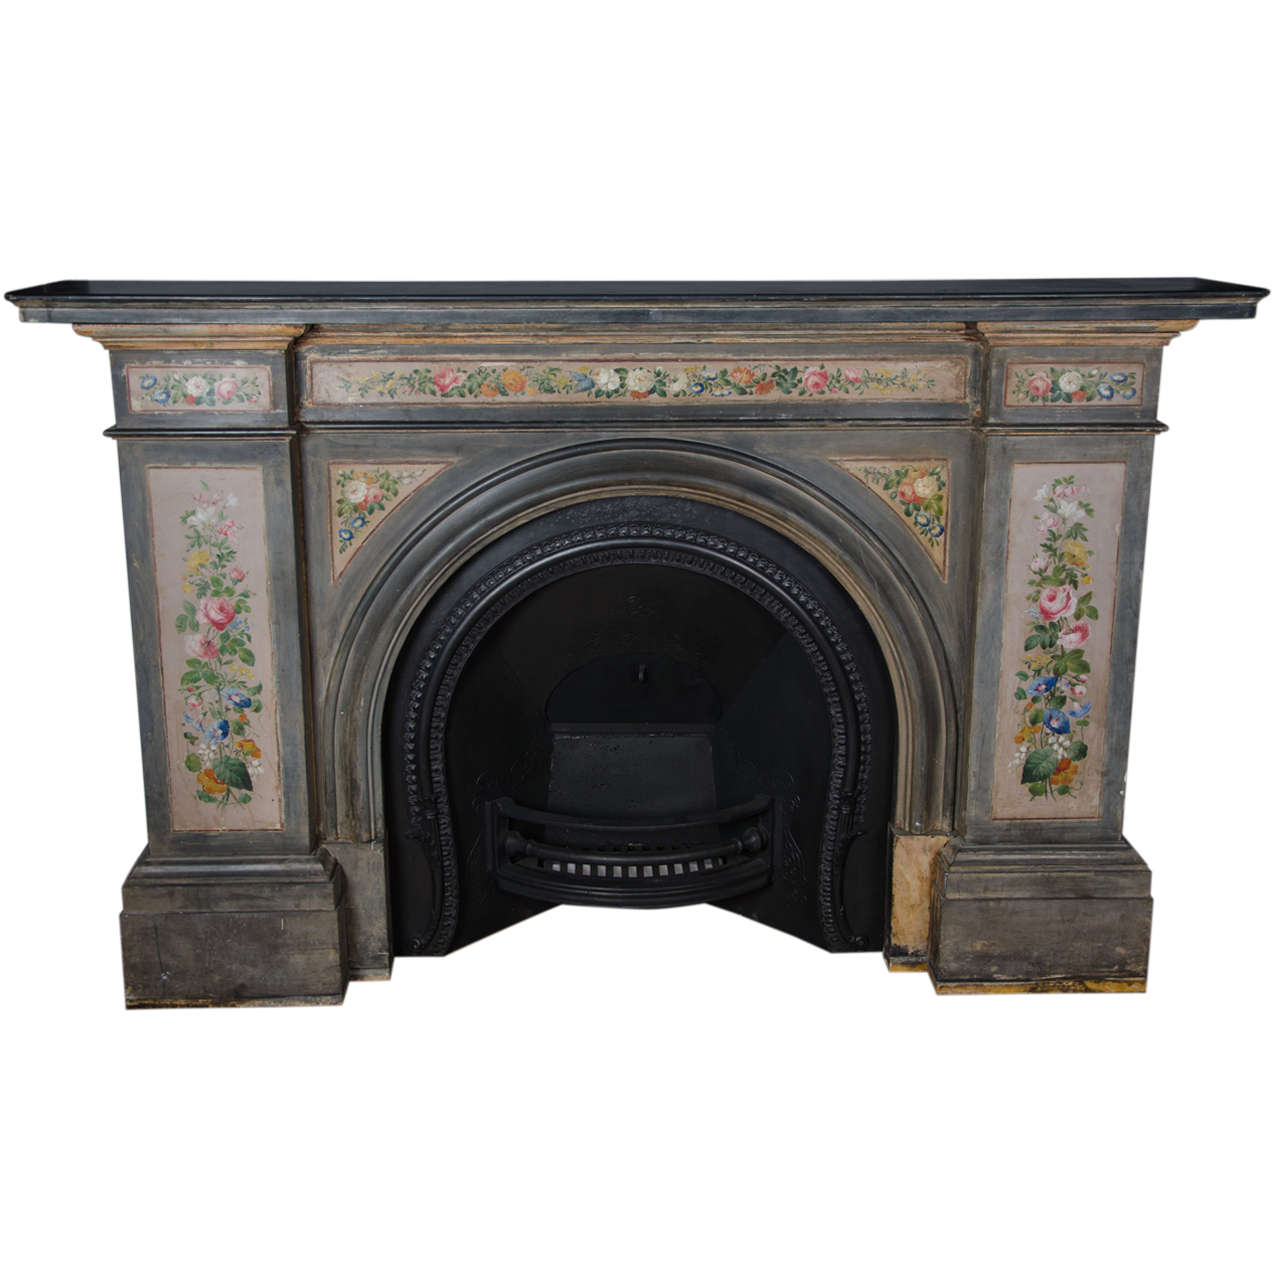 Antique Early Victorian Hand Painted Slate Arched Fireplace Surround And Insert At 1stdibs